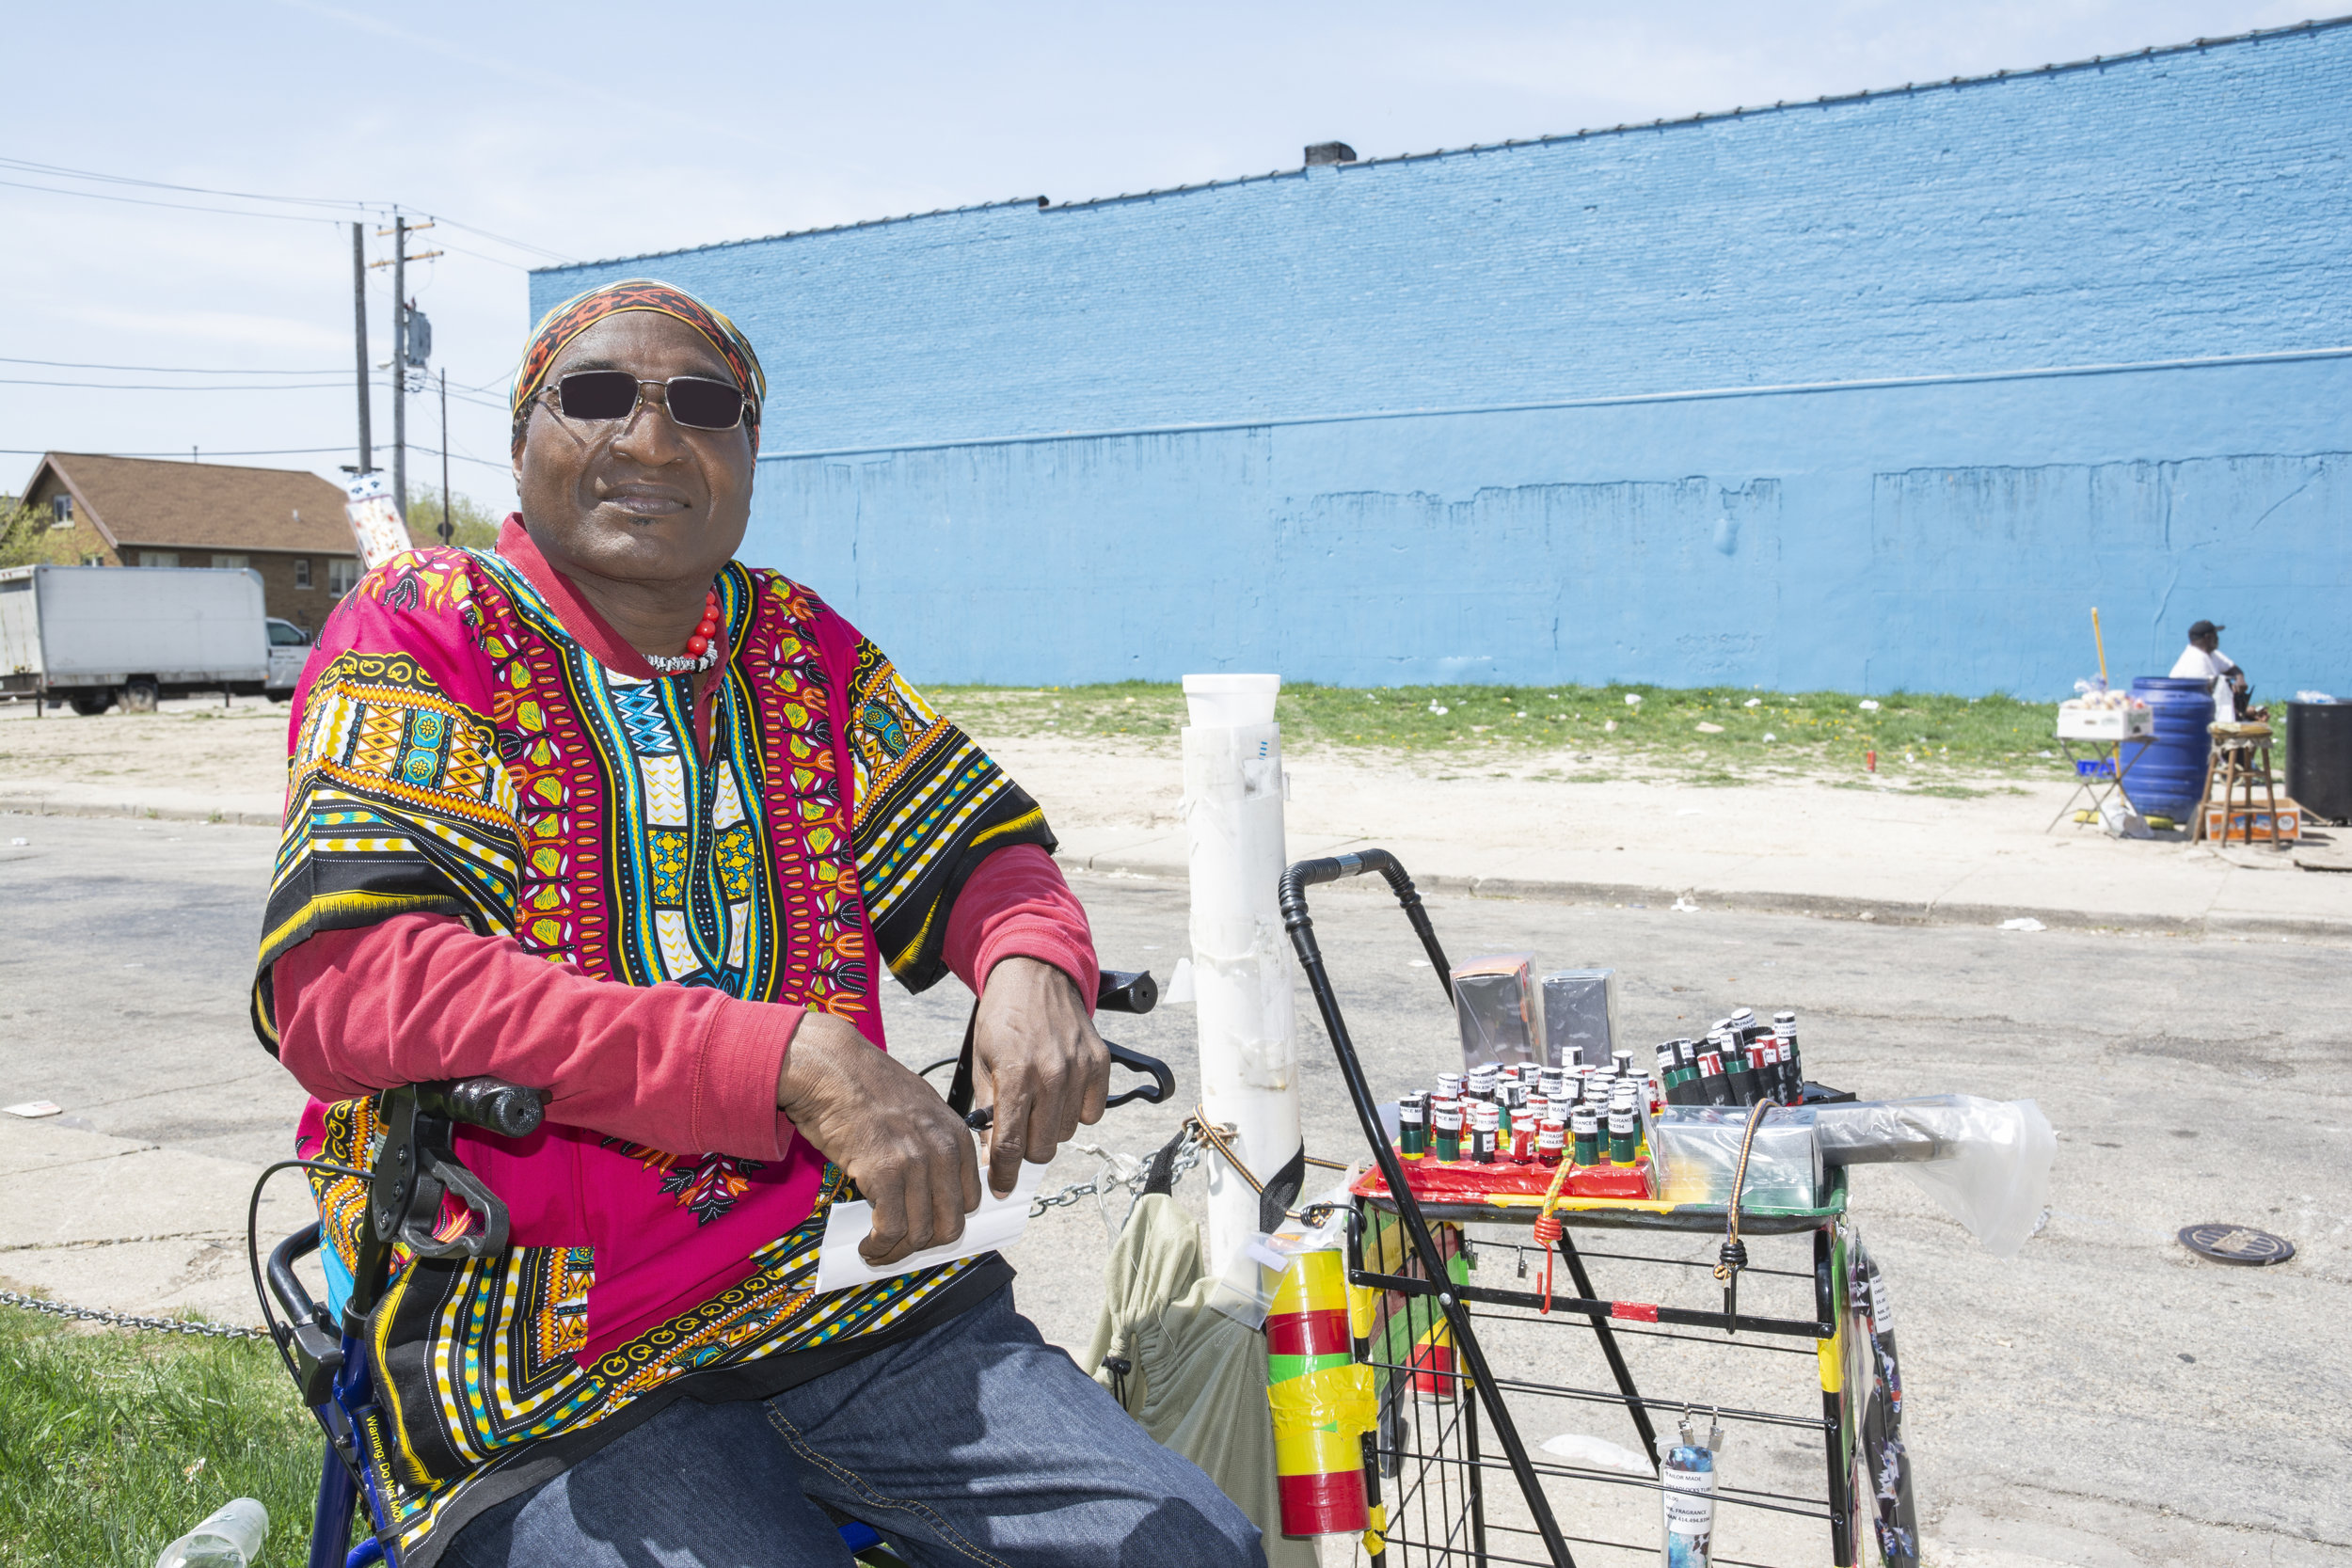 Rico is only 47 but he is disabled. In Atlanta, he repaired air conditioners and furnaces. The physical work wrecked his back for which he takes prescription opioids. He now lives in Milwaukee with his cousins and sells perfume oils across from the welfare center.